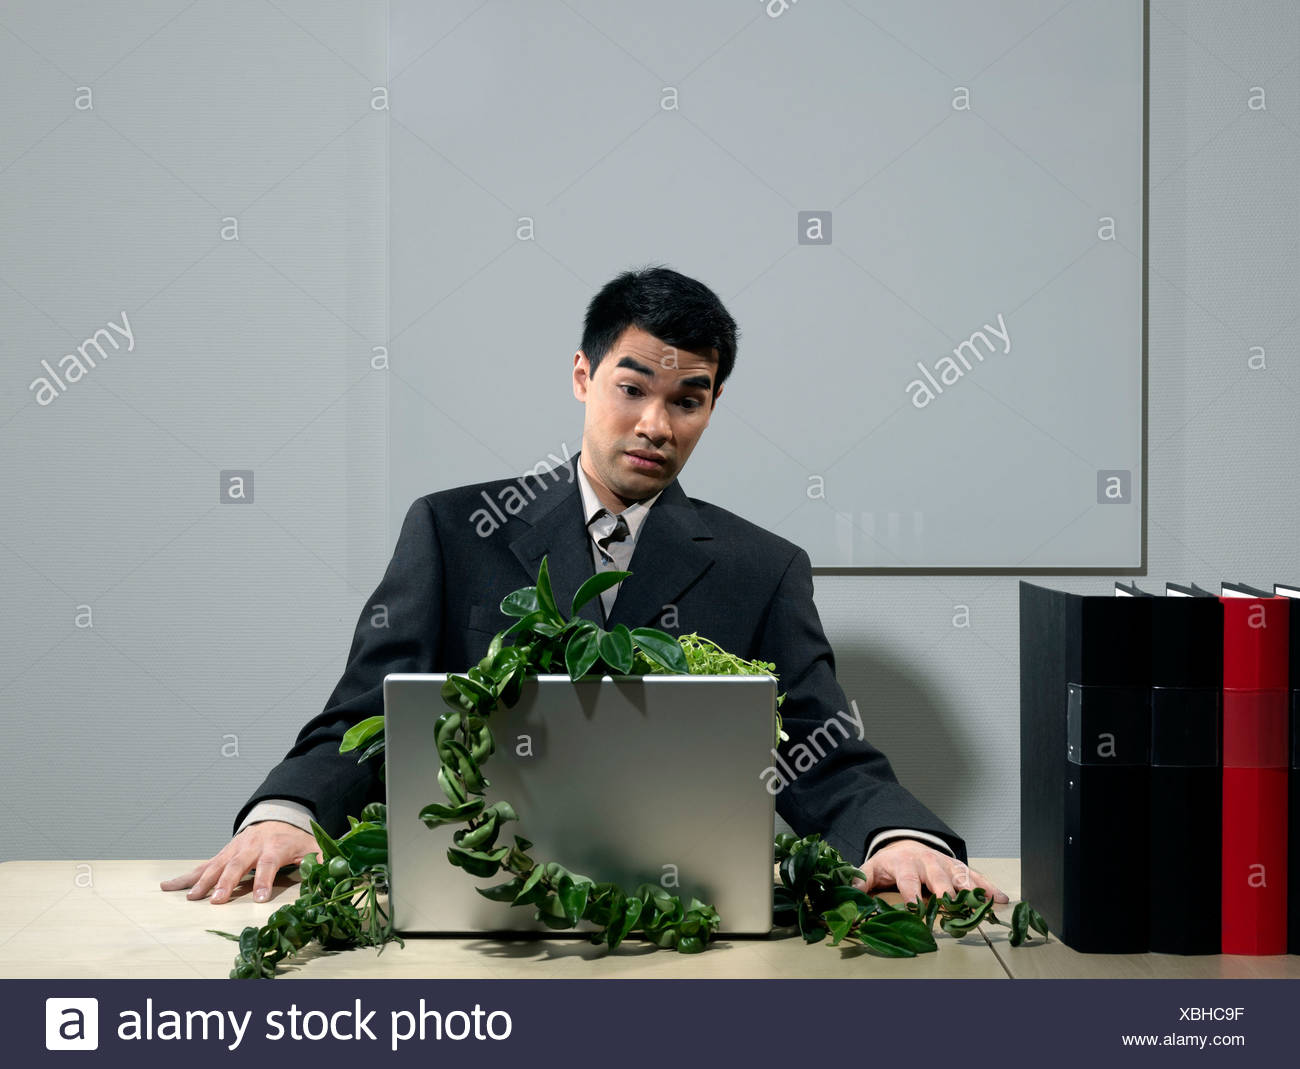 Man by desk beeing attacked by plants Stock Photo